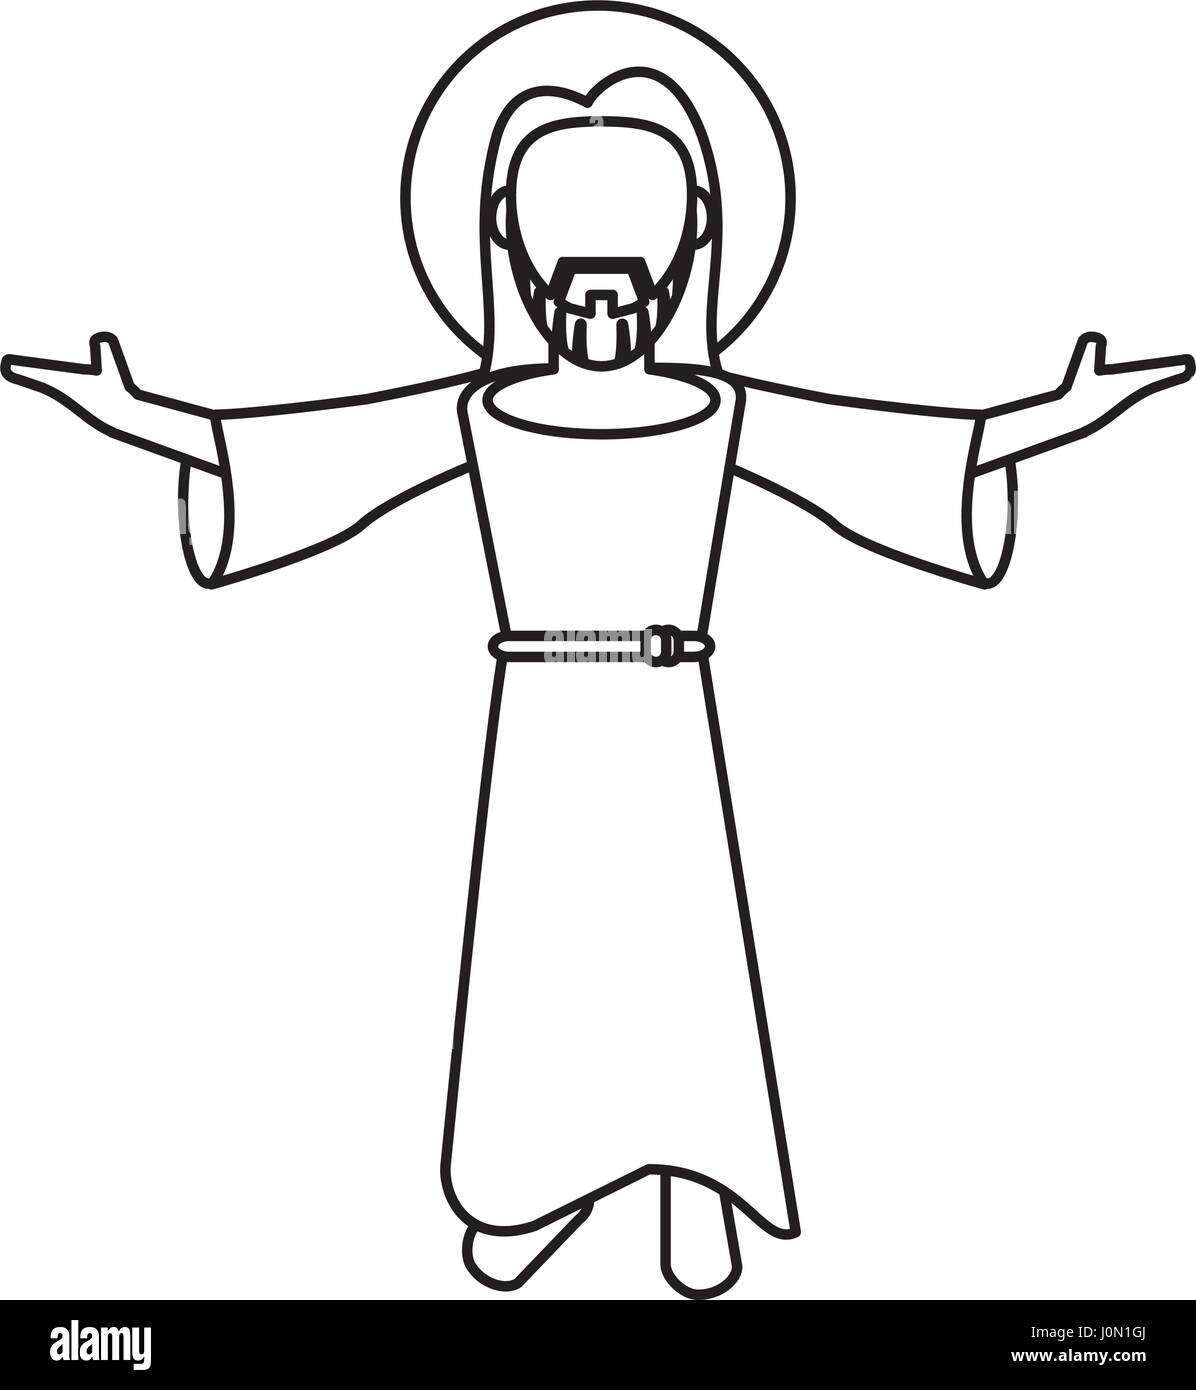 Jesus Christ Blessed Faith Outline   Stock Image